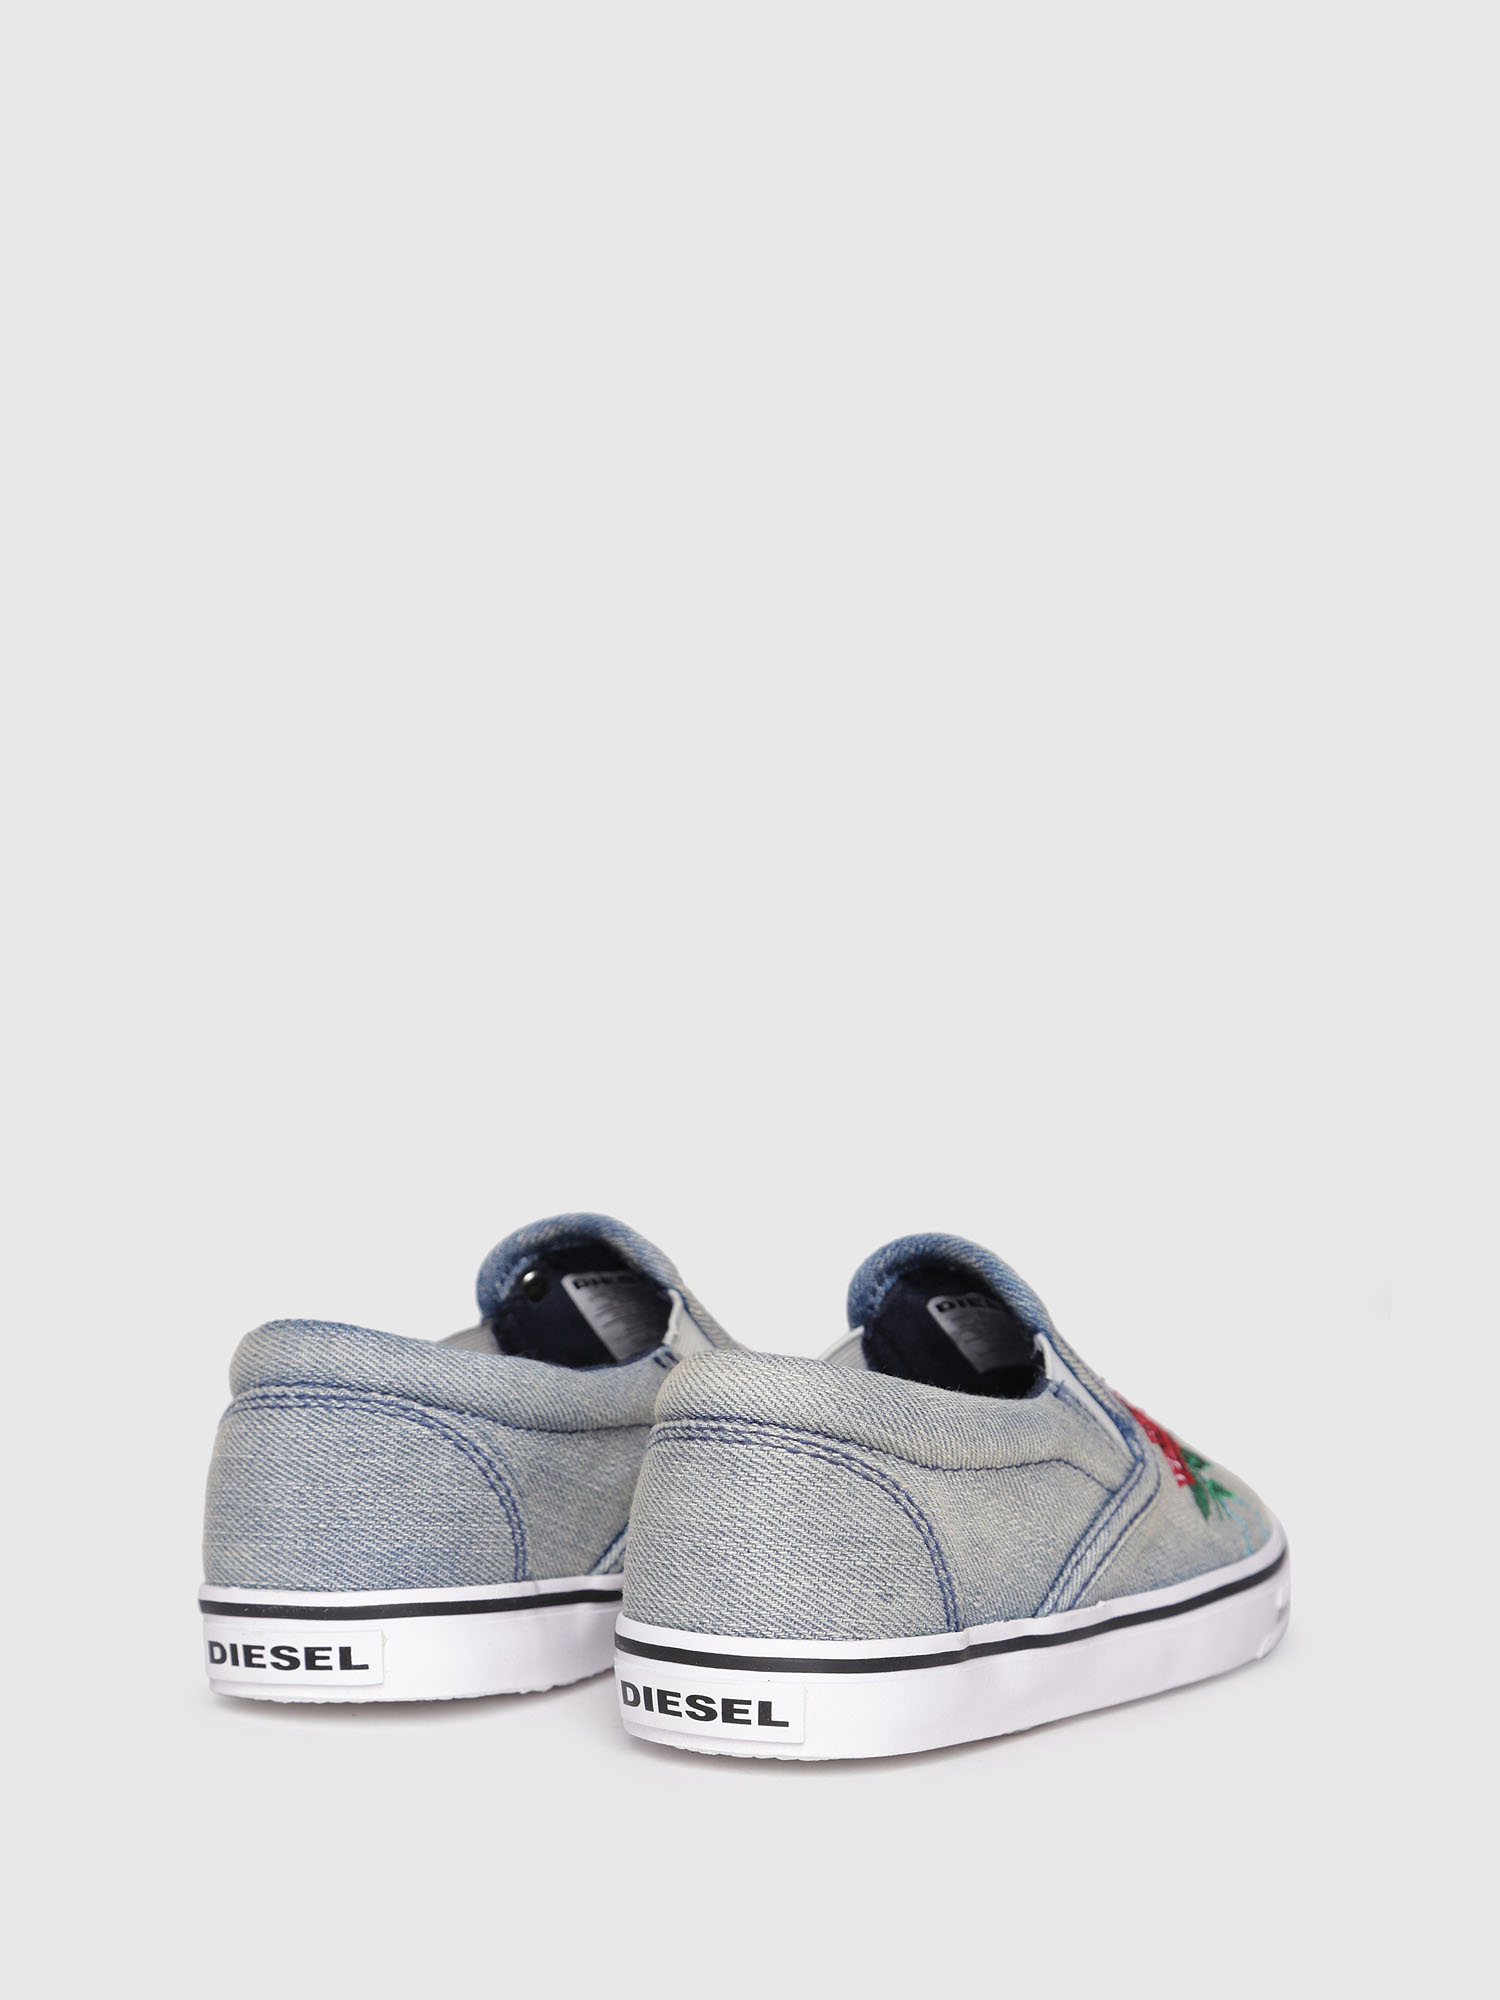 Diesel - SLIP ON 14 ROSE CH,  - Footwear - Image 3